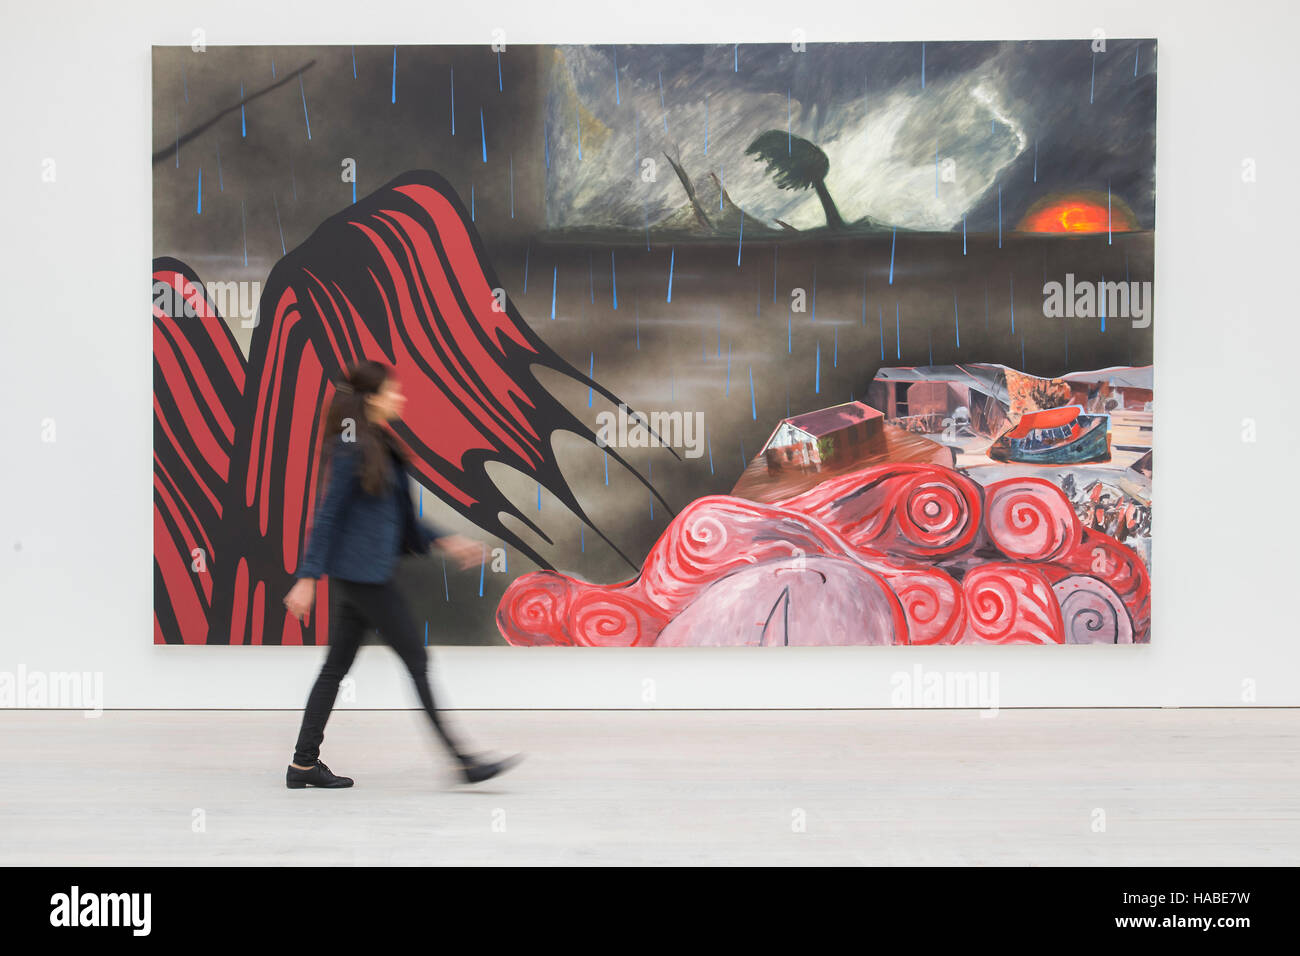 Deluge Painting Stockfotos & Deluge Painting Bilder - Alamy